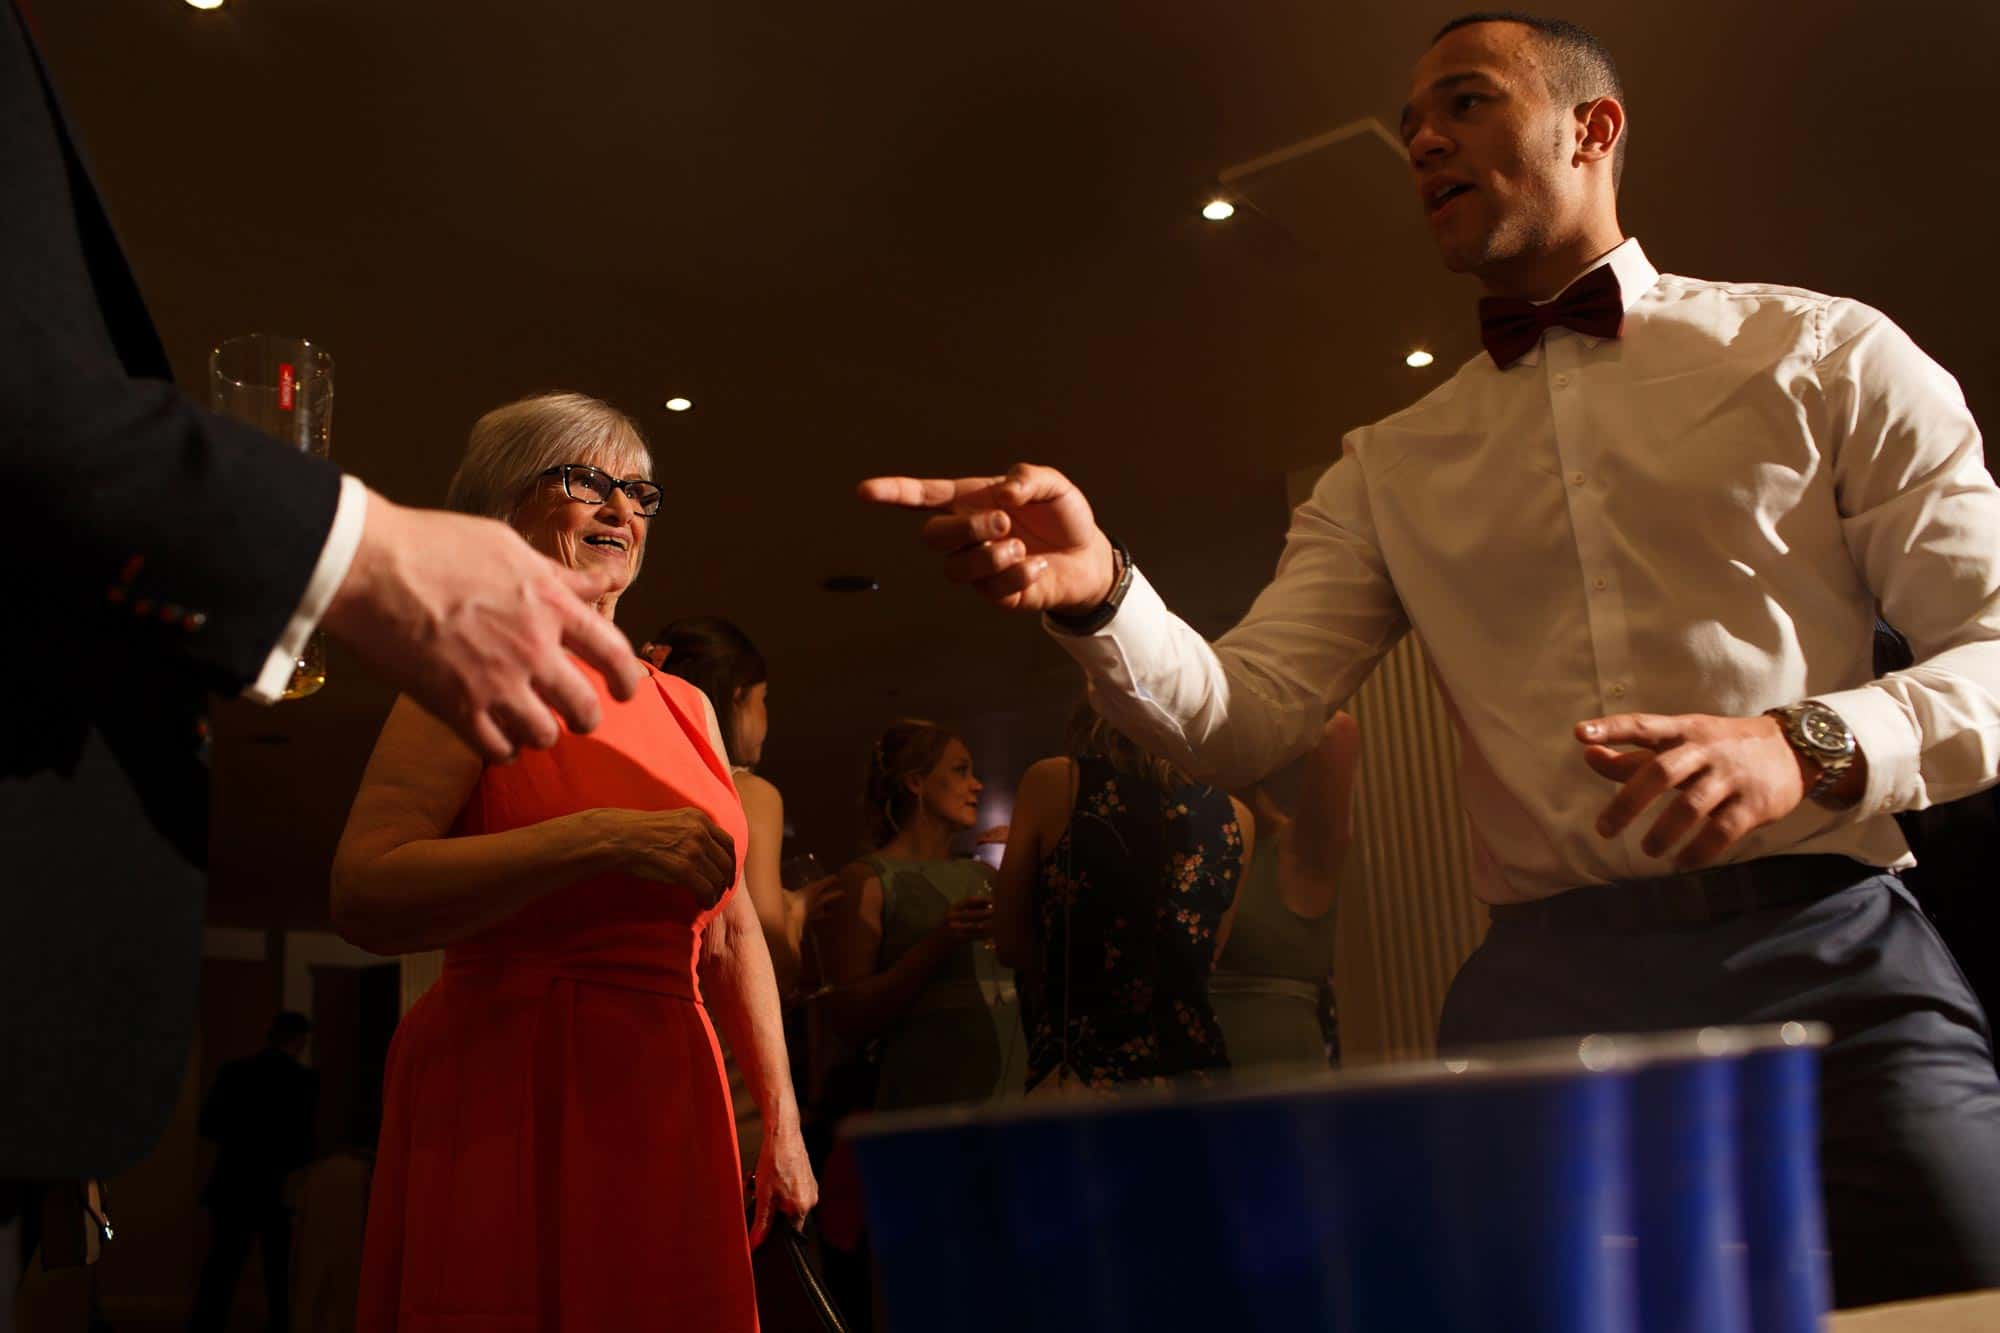 Wedding guests playing beer pong at Mitton Hall wedding